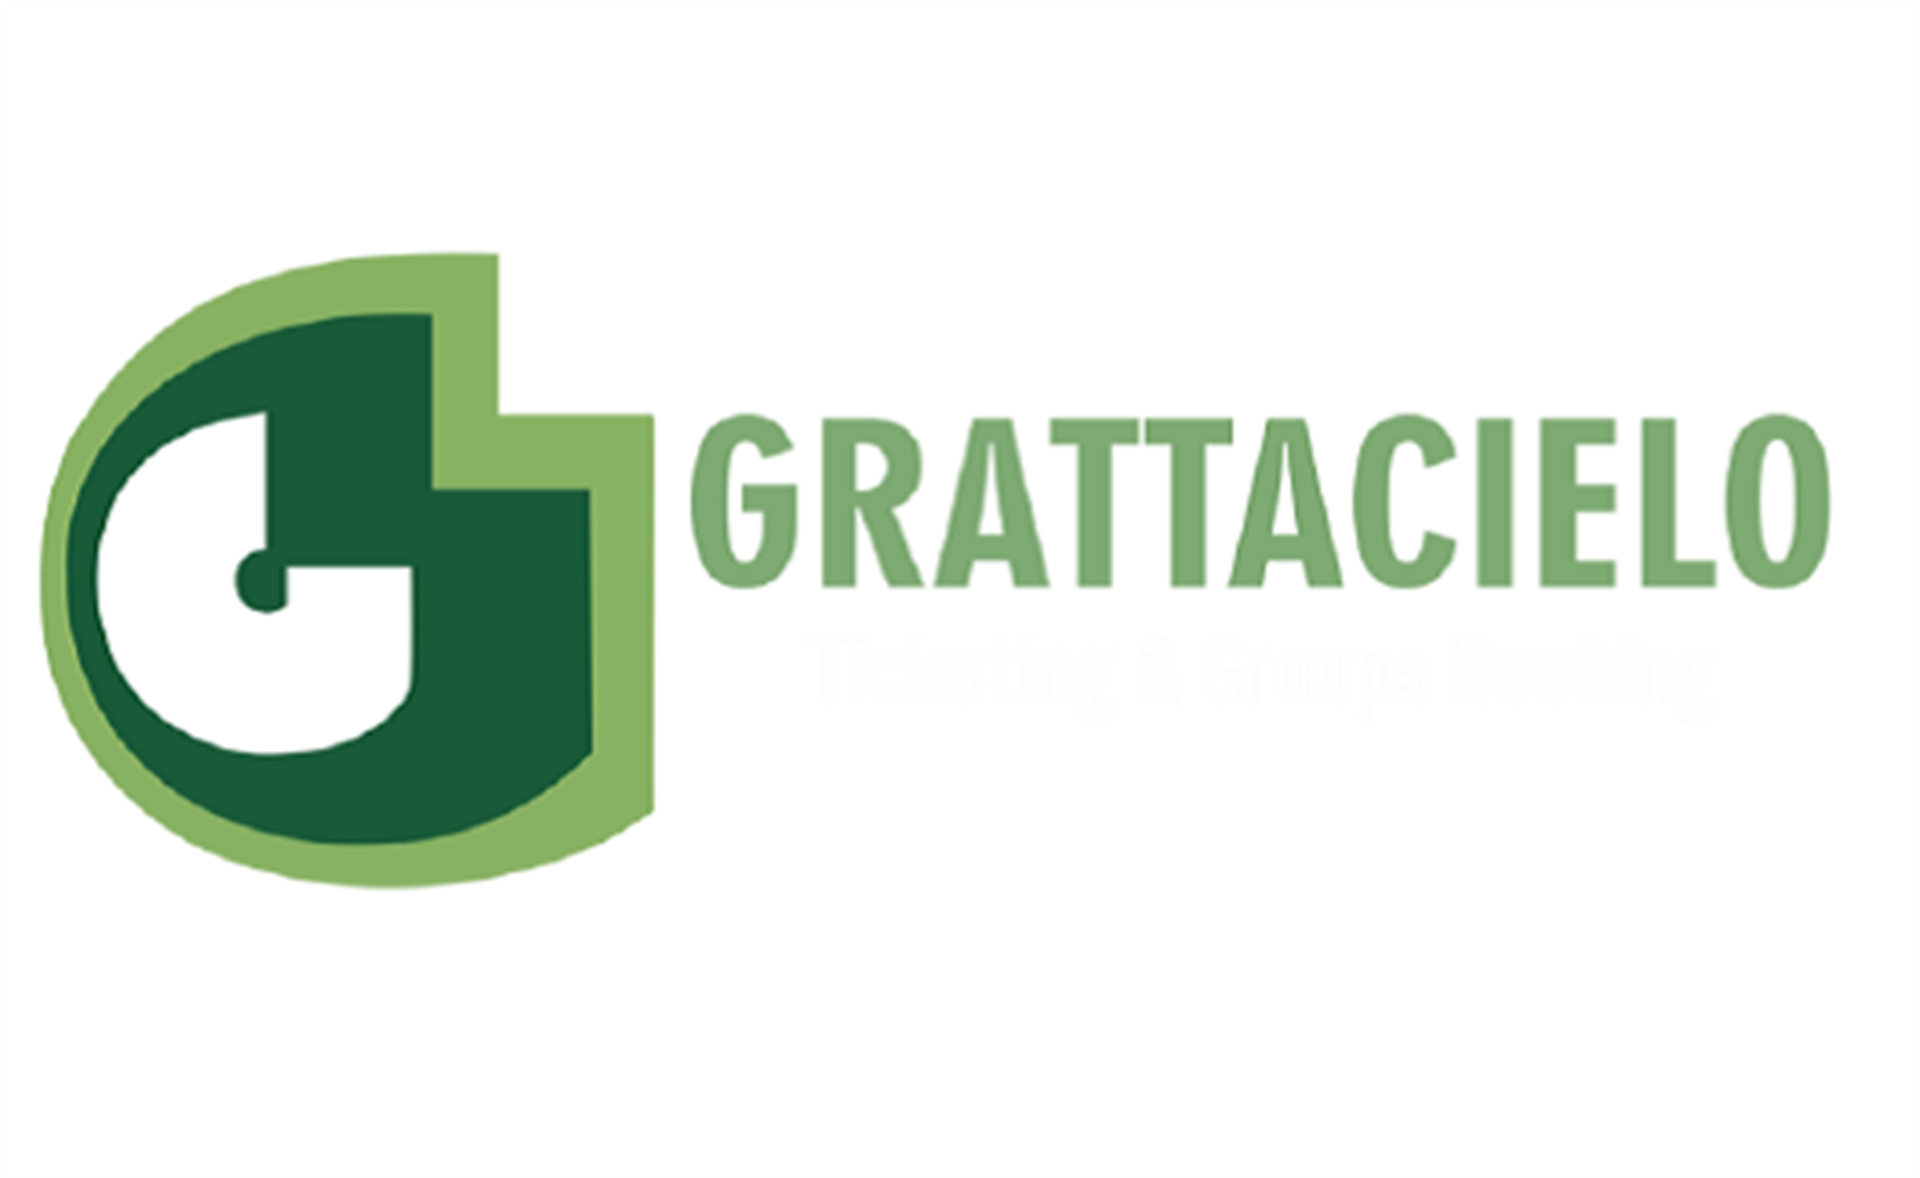 Grattacielo ticketing & groups booking